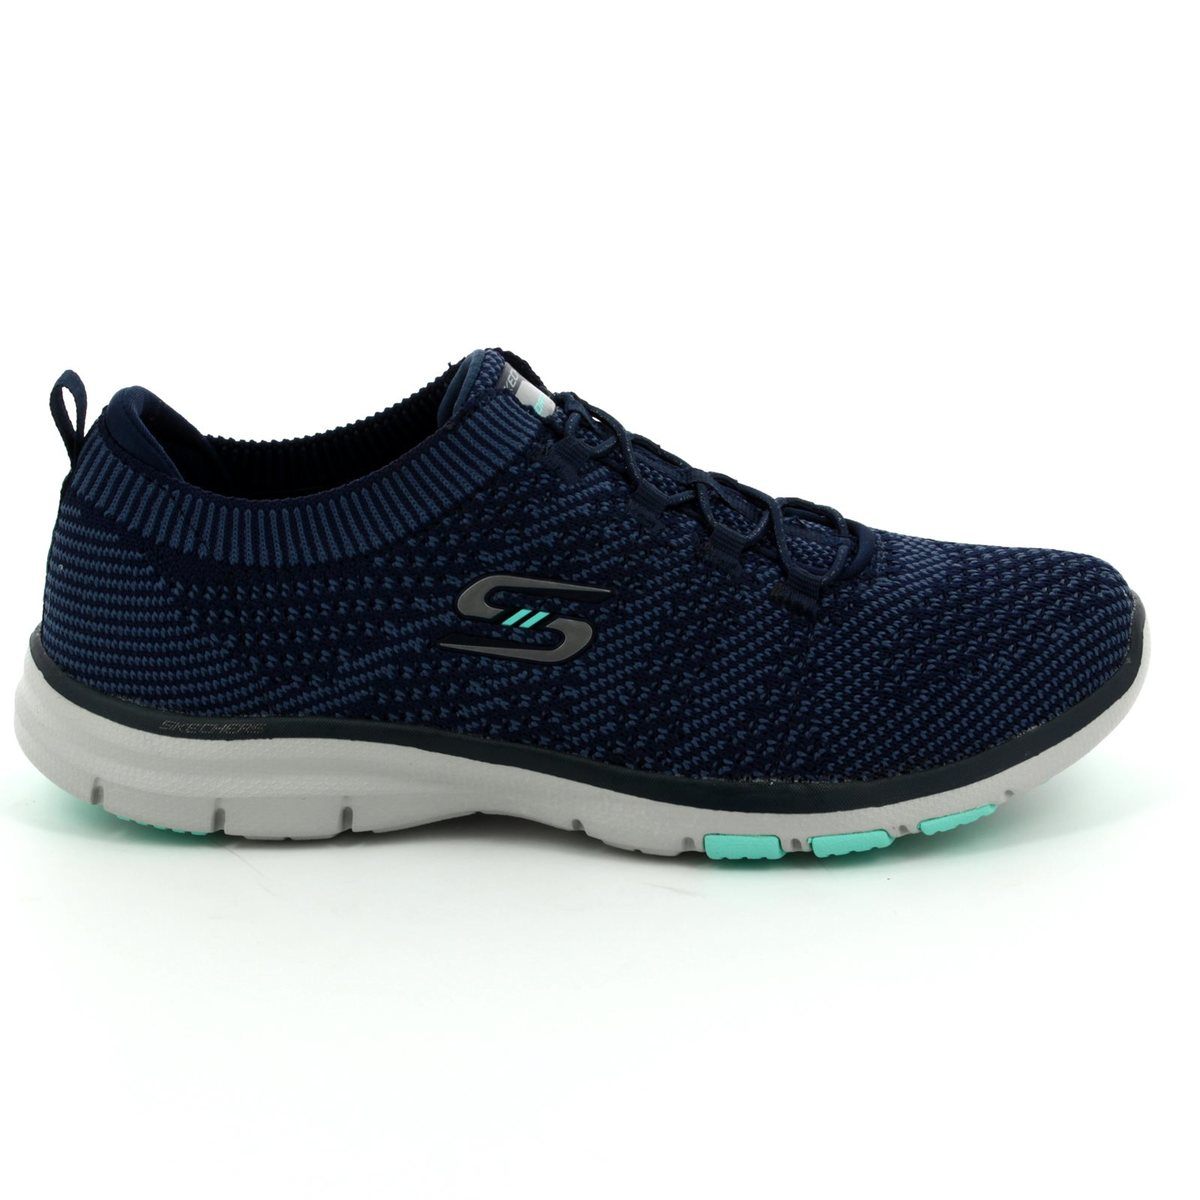 Egg Pram Boots Skechers Galaxies 22882 Nvbl Navy Blue Trainers